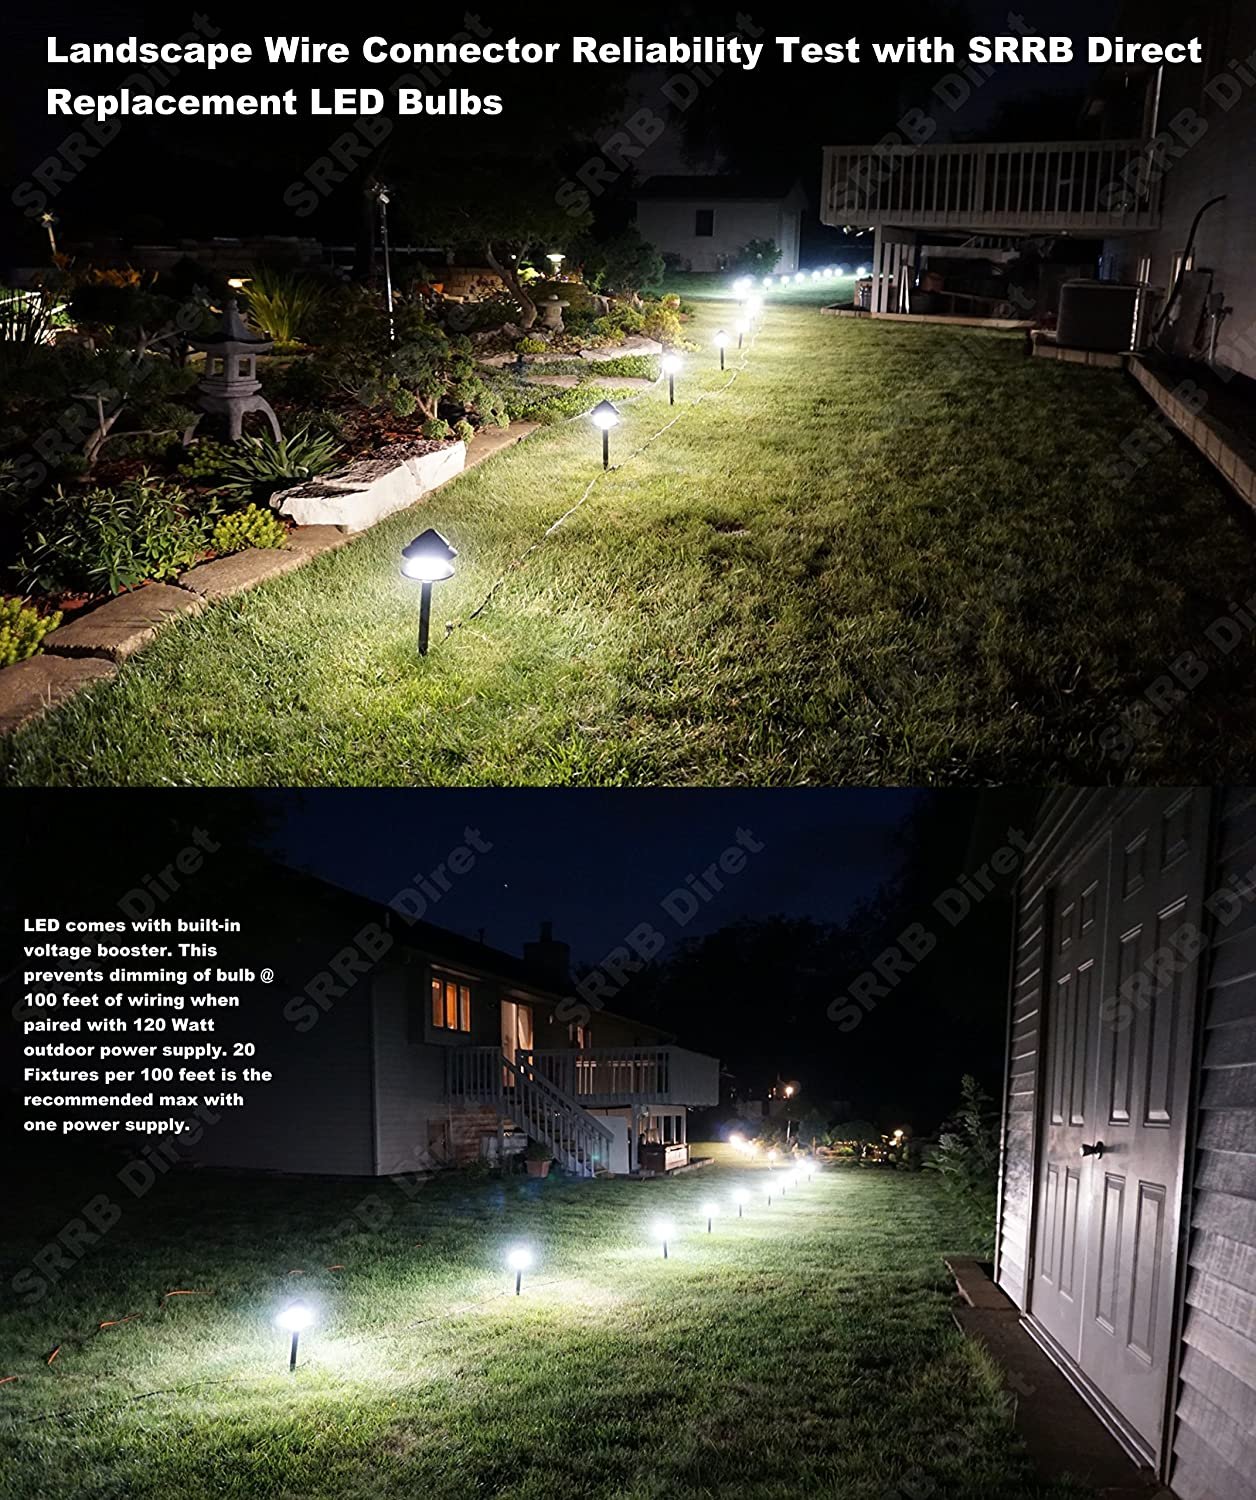 Srrb Direct Low Voltage Replacement Landscape Light 12 Wiring 12v Lights 14 Gauge Cable Connector For Malibu Paradise Moonrays And More Garden Outdoor